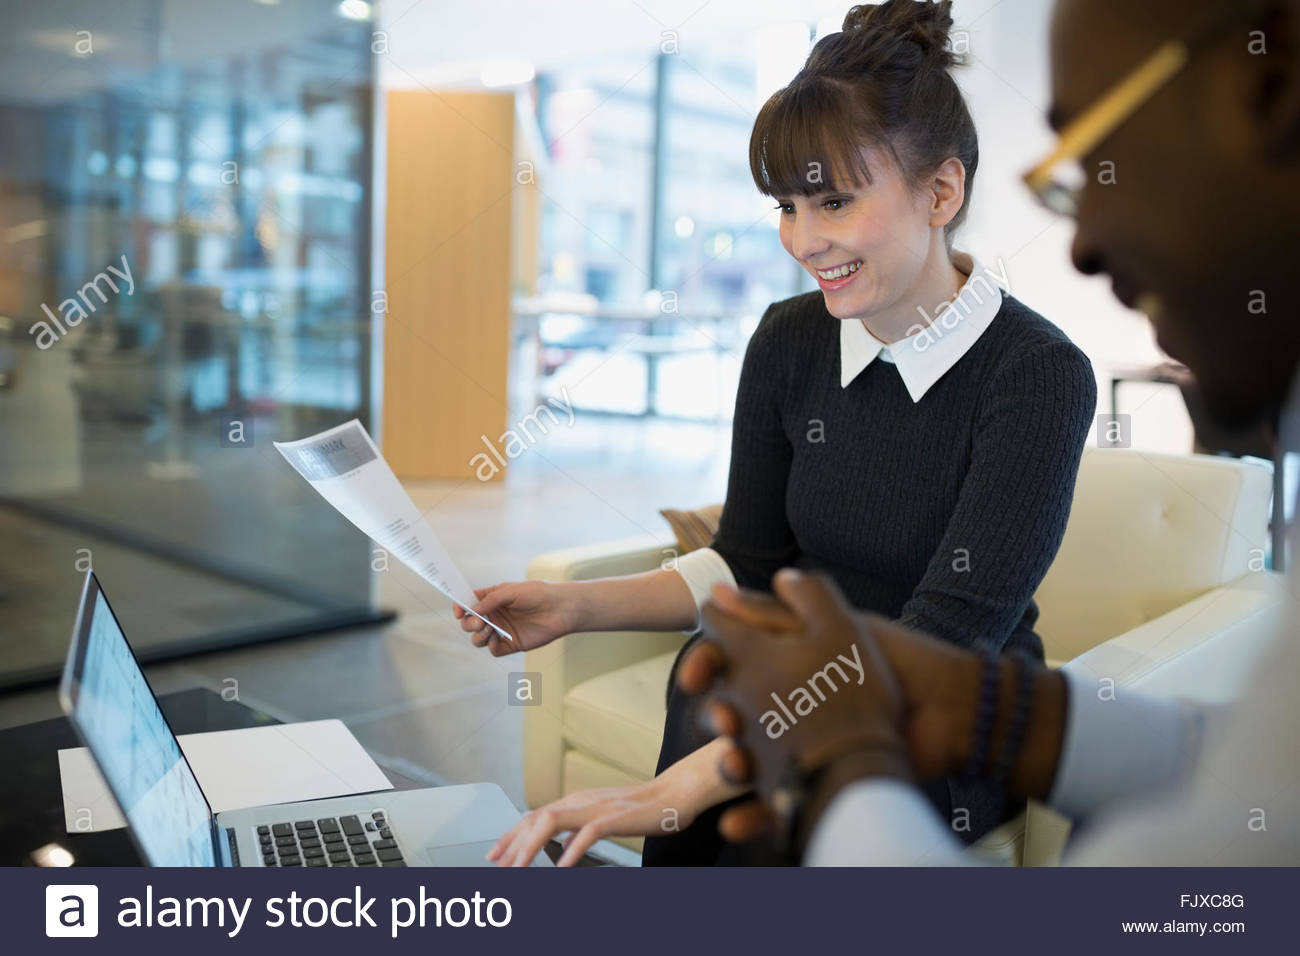 Business people using laptop in office lobby - Stock Image